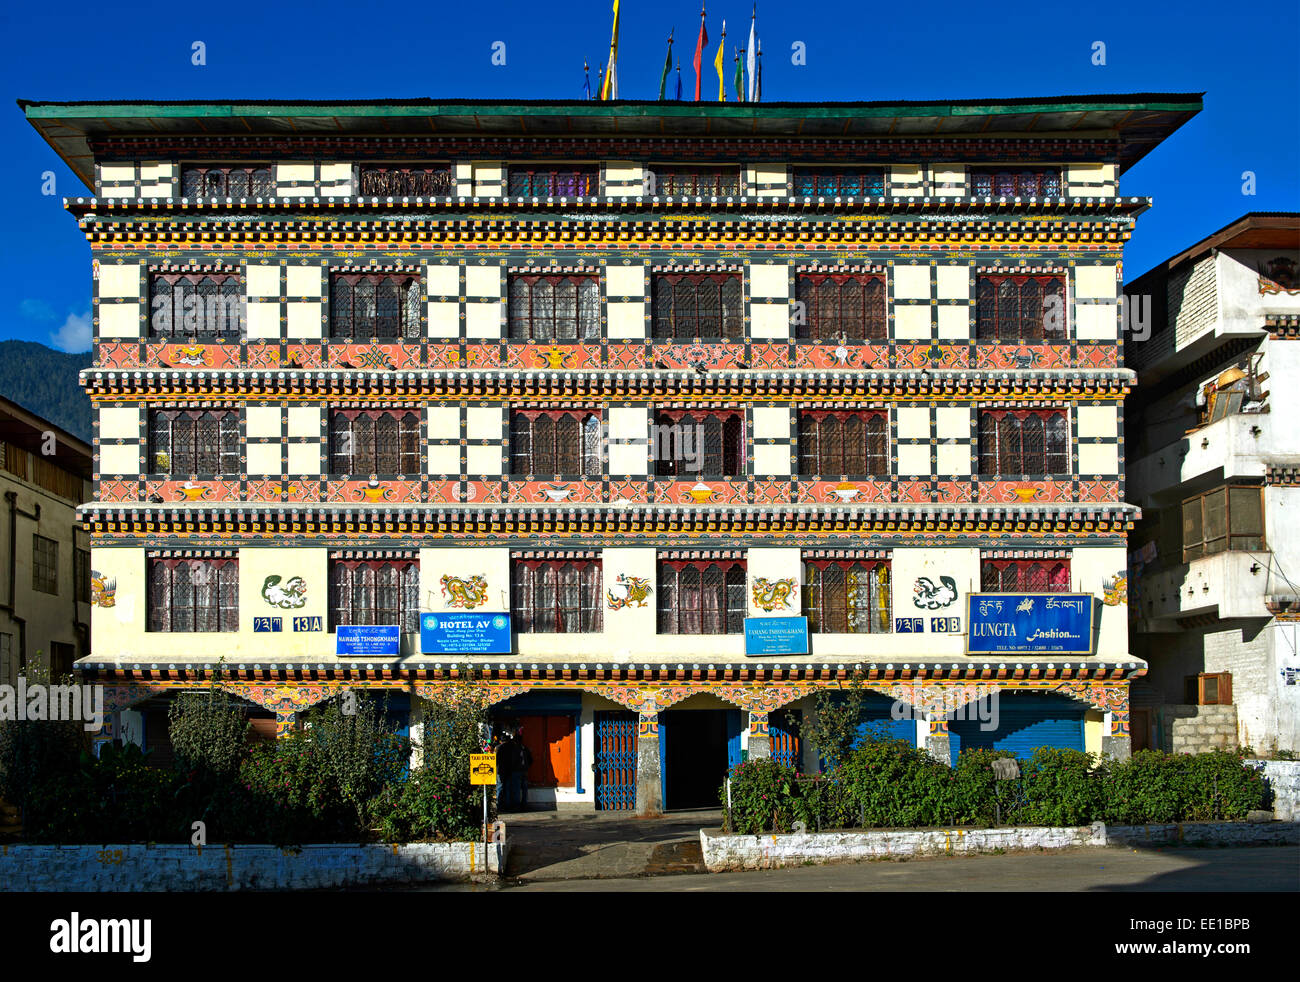 Commercial building with company nameplates, Thimphu, Bhutan - Stock Image